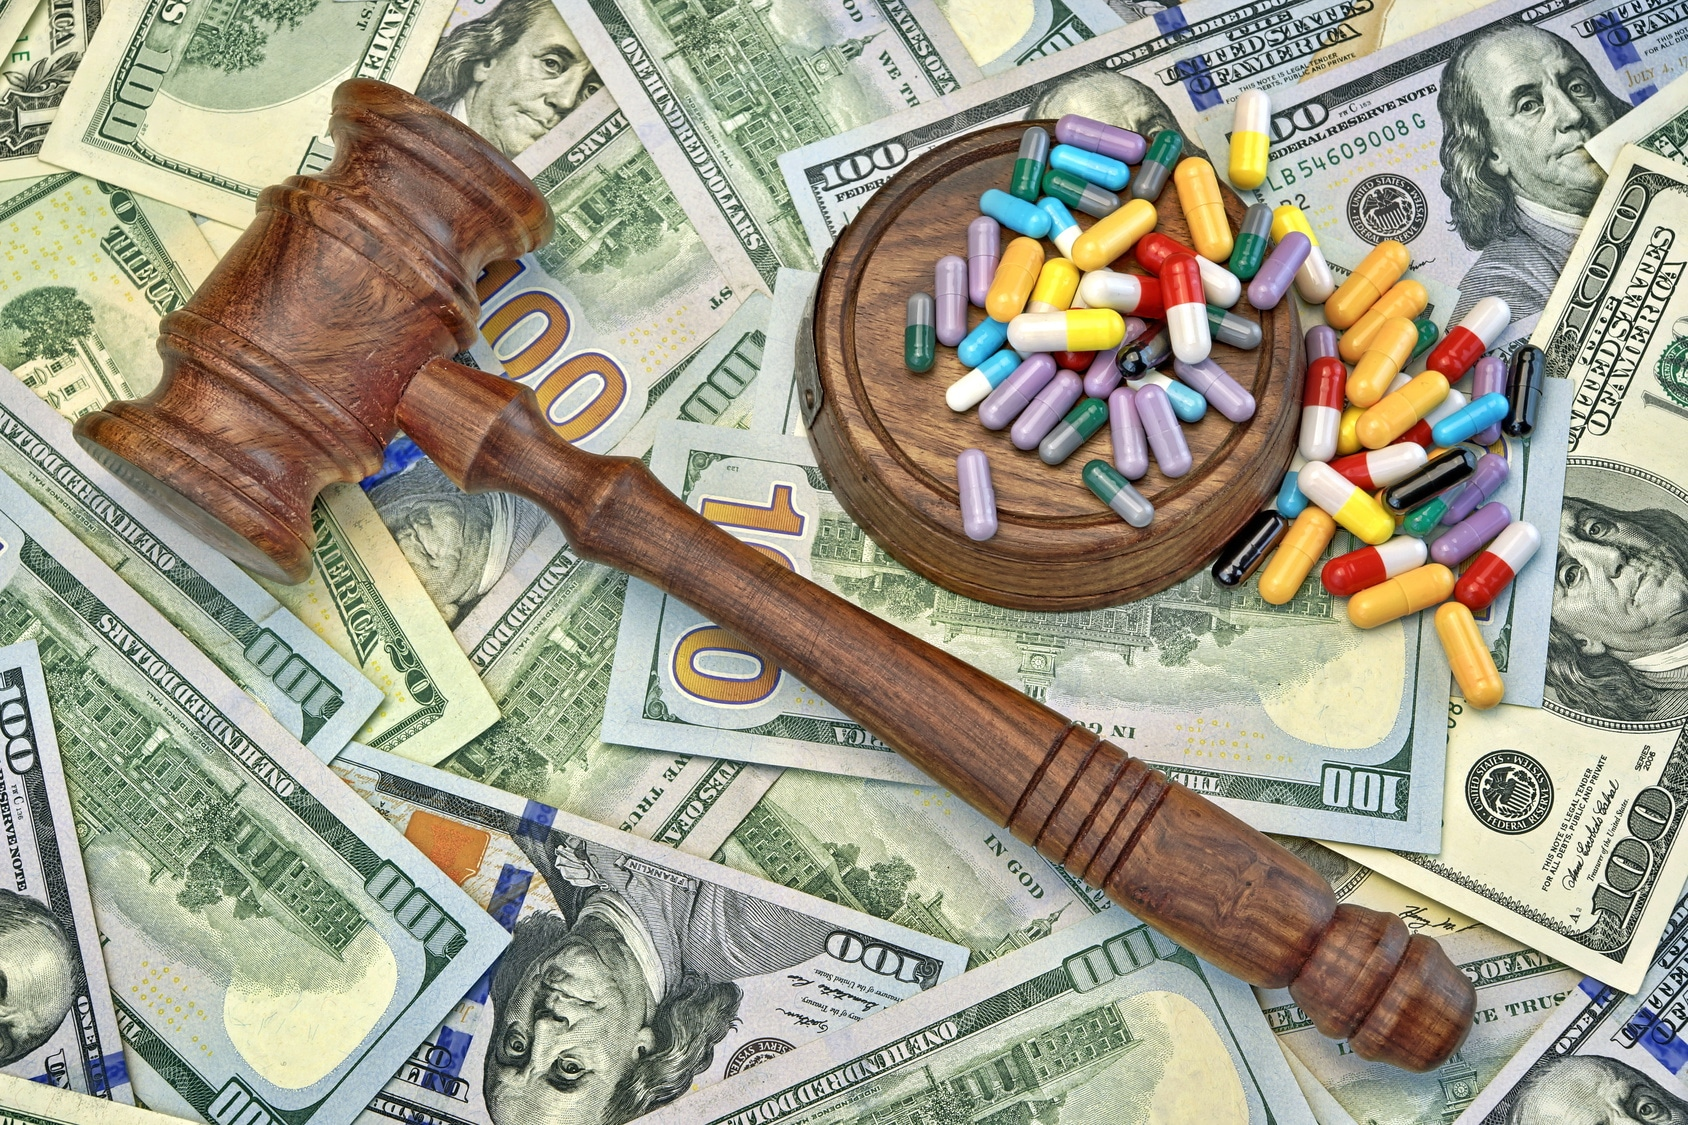 Wood Judges Gavel And Scattered Colorful Drugs On The Dollar Cash Background, Overhead View, Concept For Medical Negligence, Bail, Monetary Compensation, Drugs Falsification